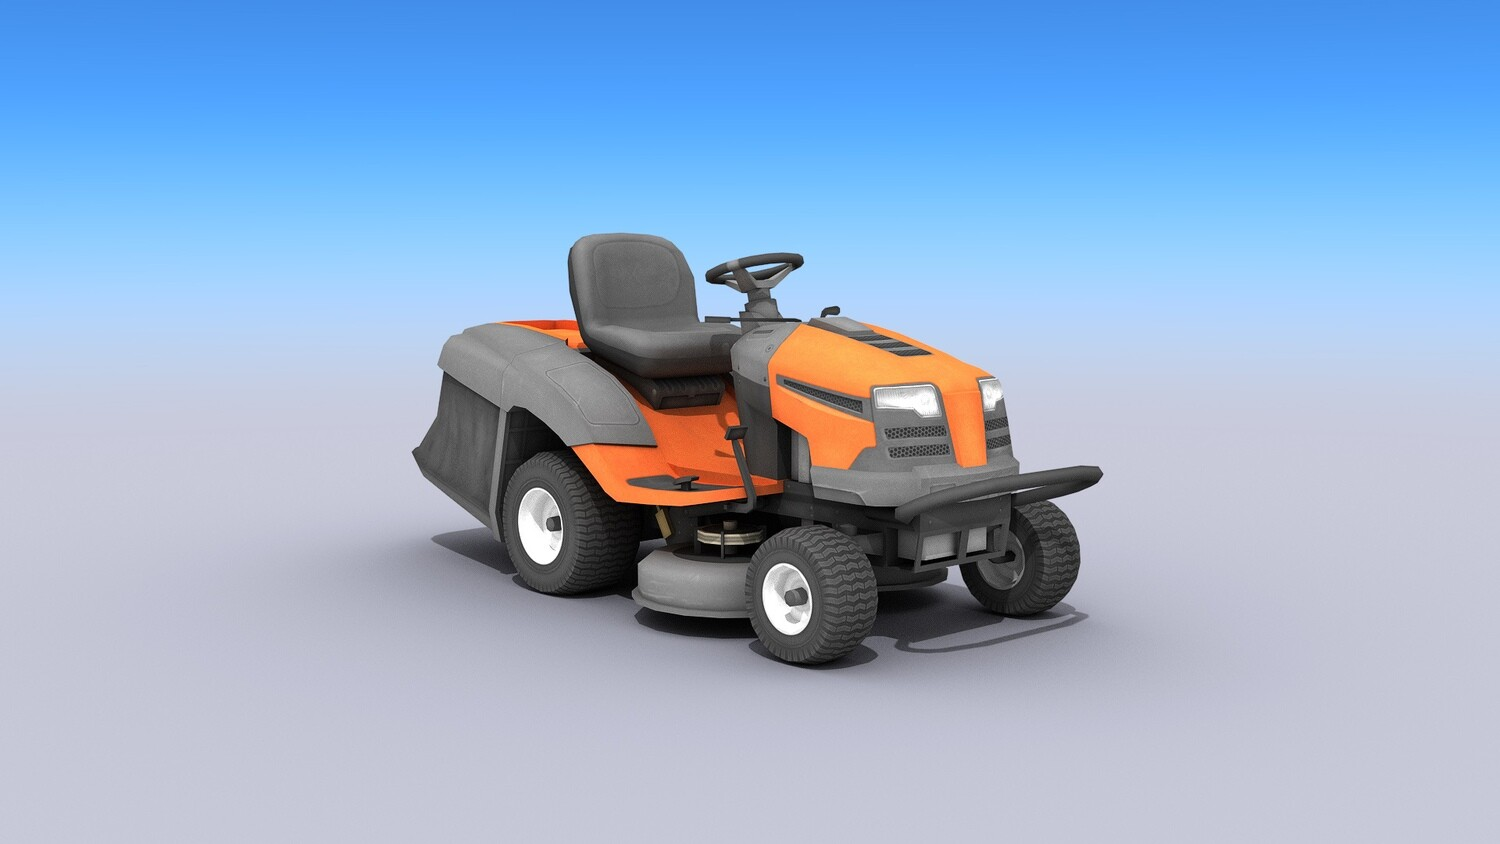 Riding Lawn Mower - Low-poly 3D model